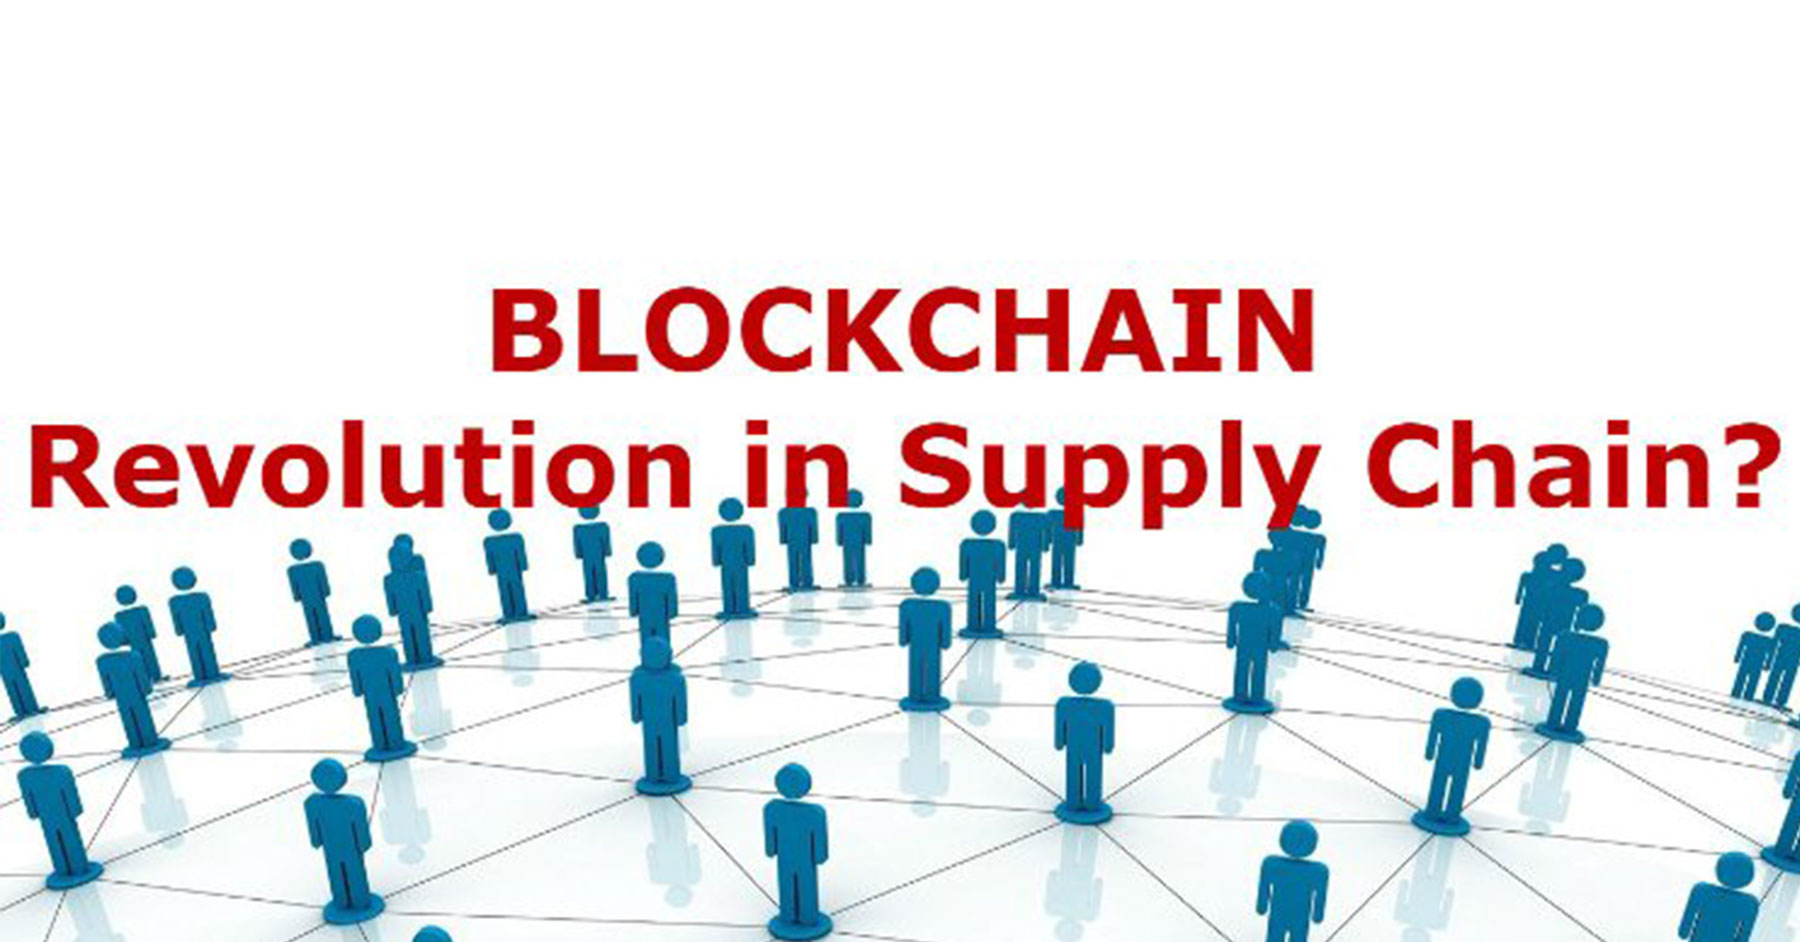 Blockchain - Revolution in Supply Chain?